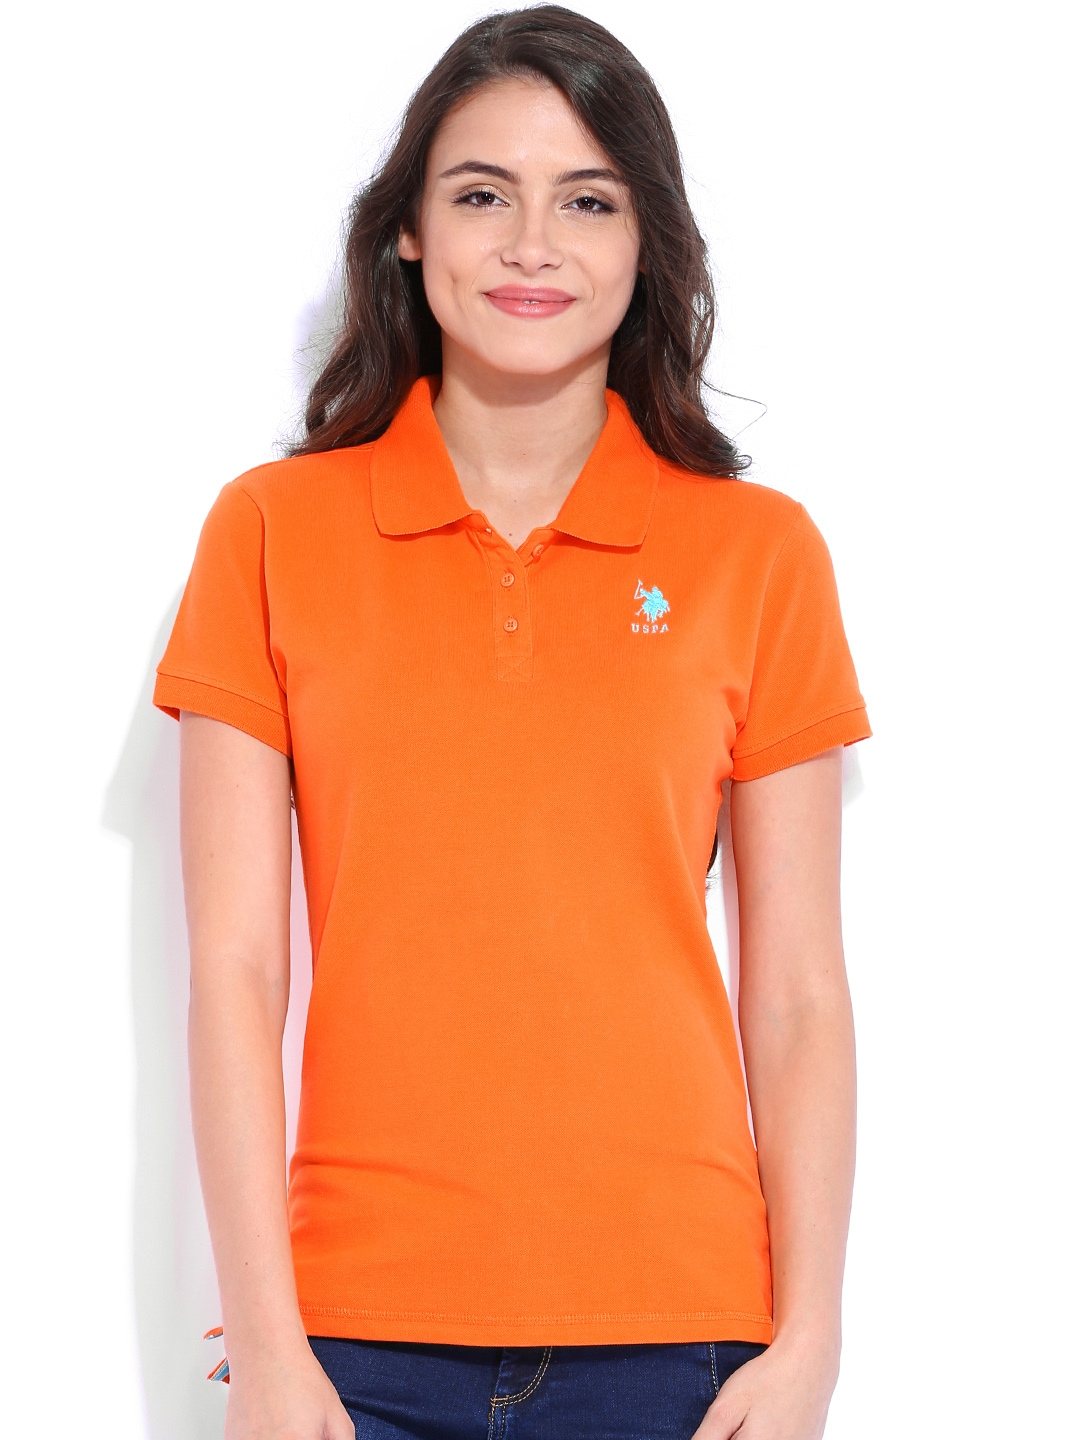 Shop girls' polo shirts in sizes and find everything from short sleeve polos to long sleeve polo shirts. Ralph Lauren. Be the First to Know This offer is not valid at Double RL retail stores or Polo Ralph Lauren Factory Stores. This offer is applied online when you enter the following code: FAMILY. This offer is not valid on previously.